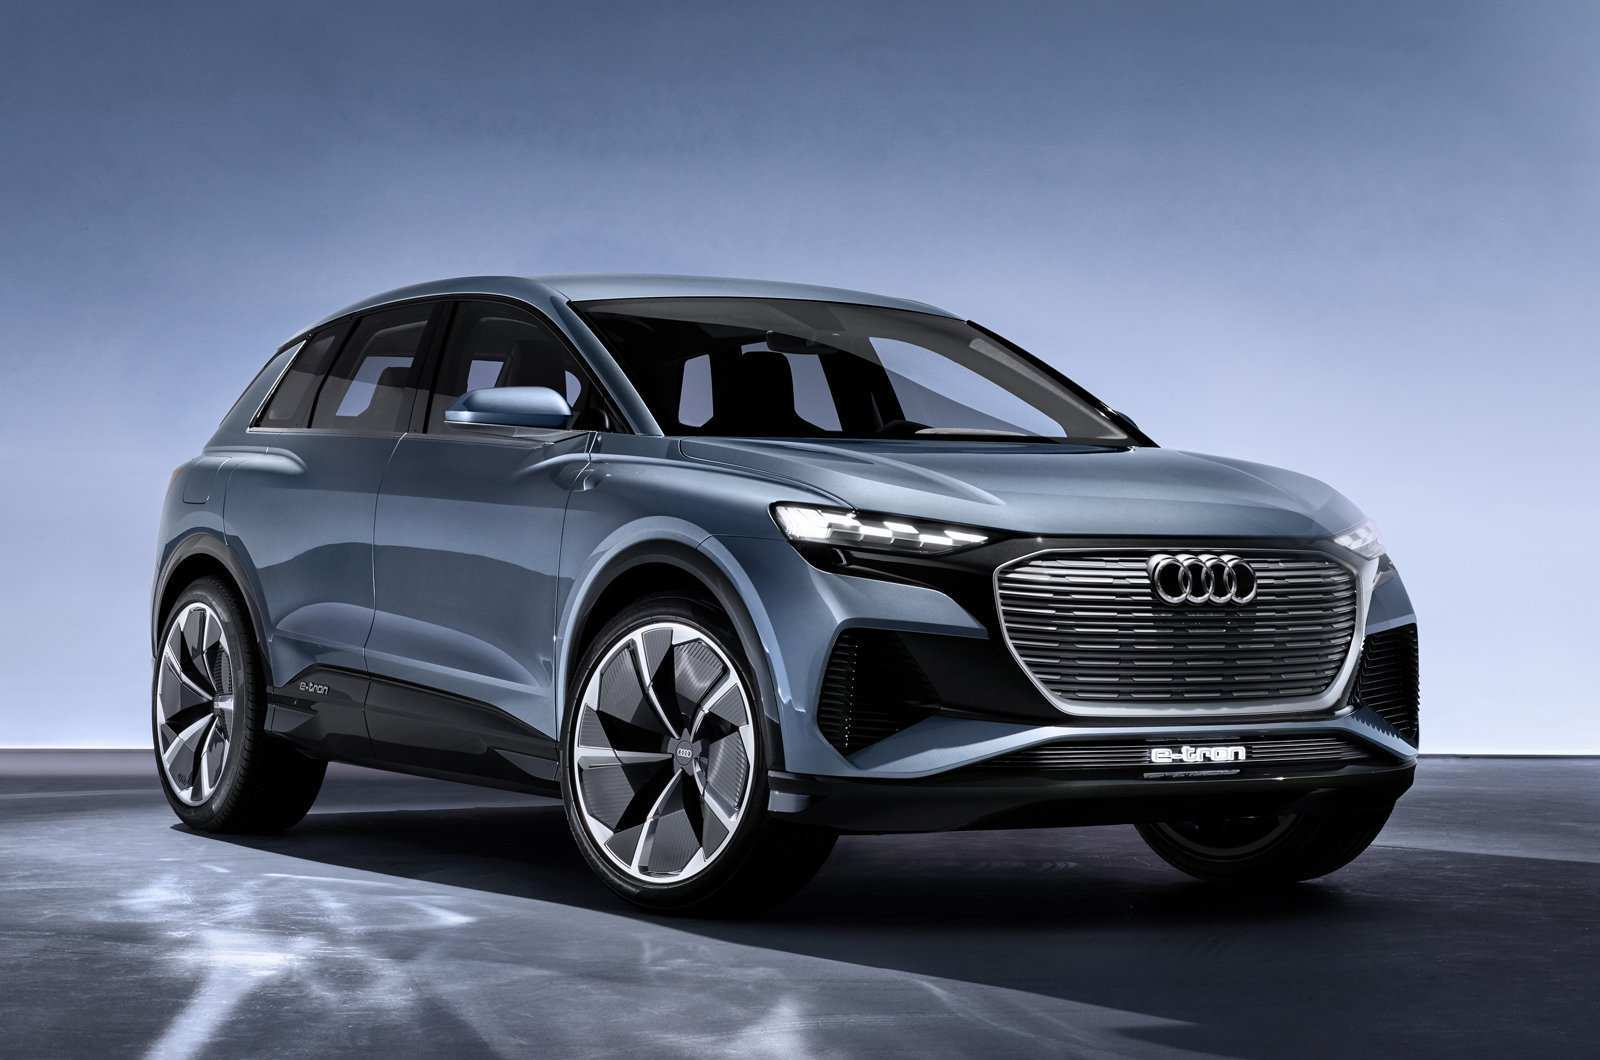 60 The Best Audi Electric Suv 2020 First Drive